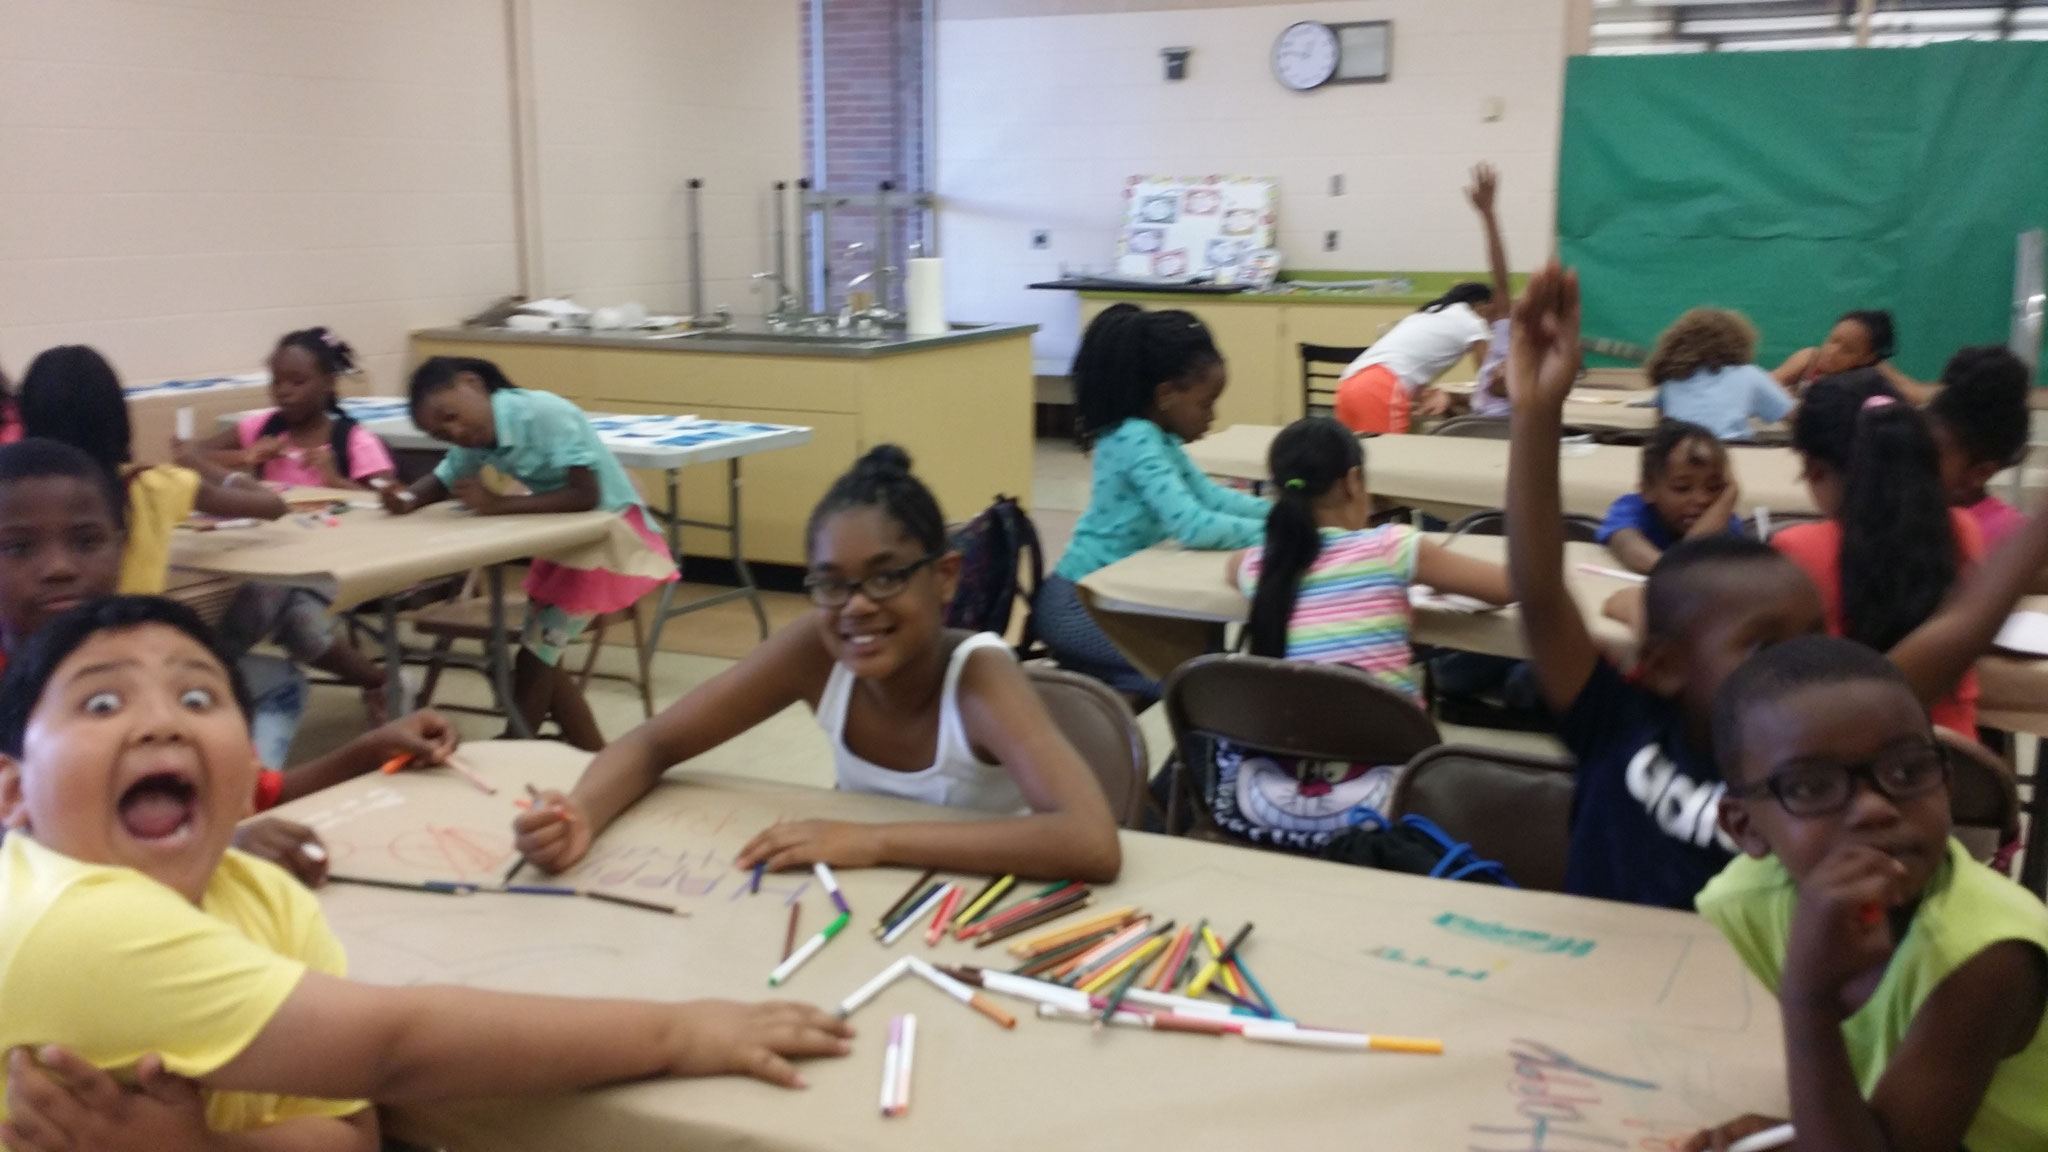 Center for Arts-Inspired Learning: Richmond Heights Schools Summer Visual Arts Program